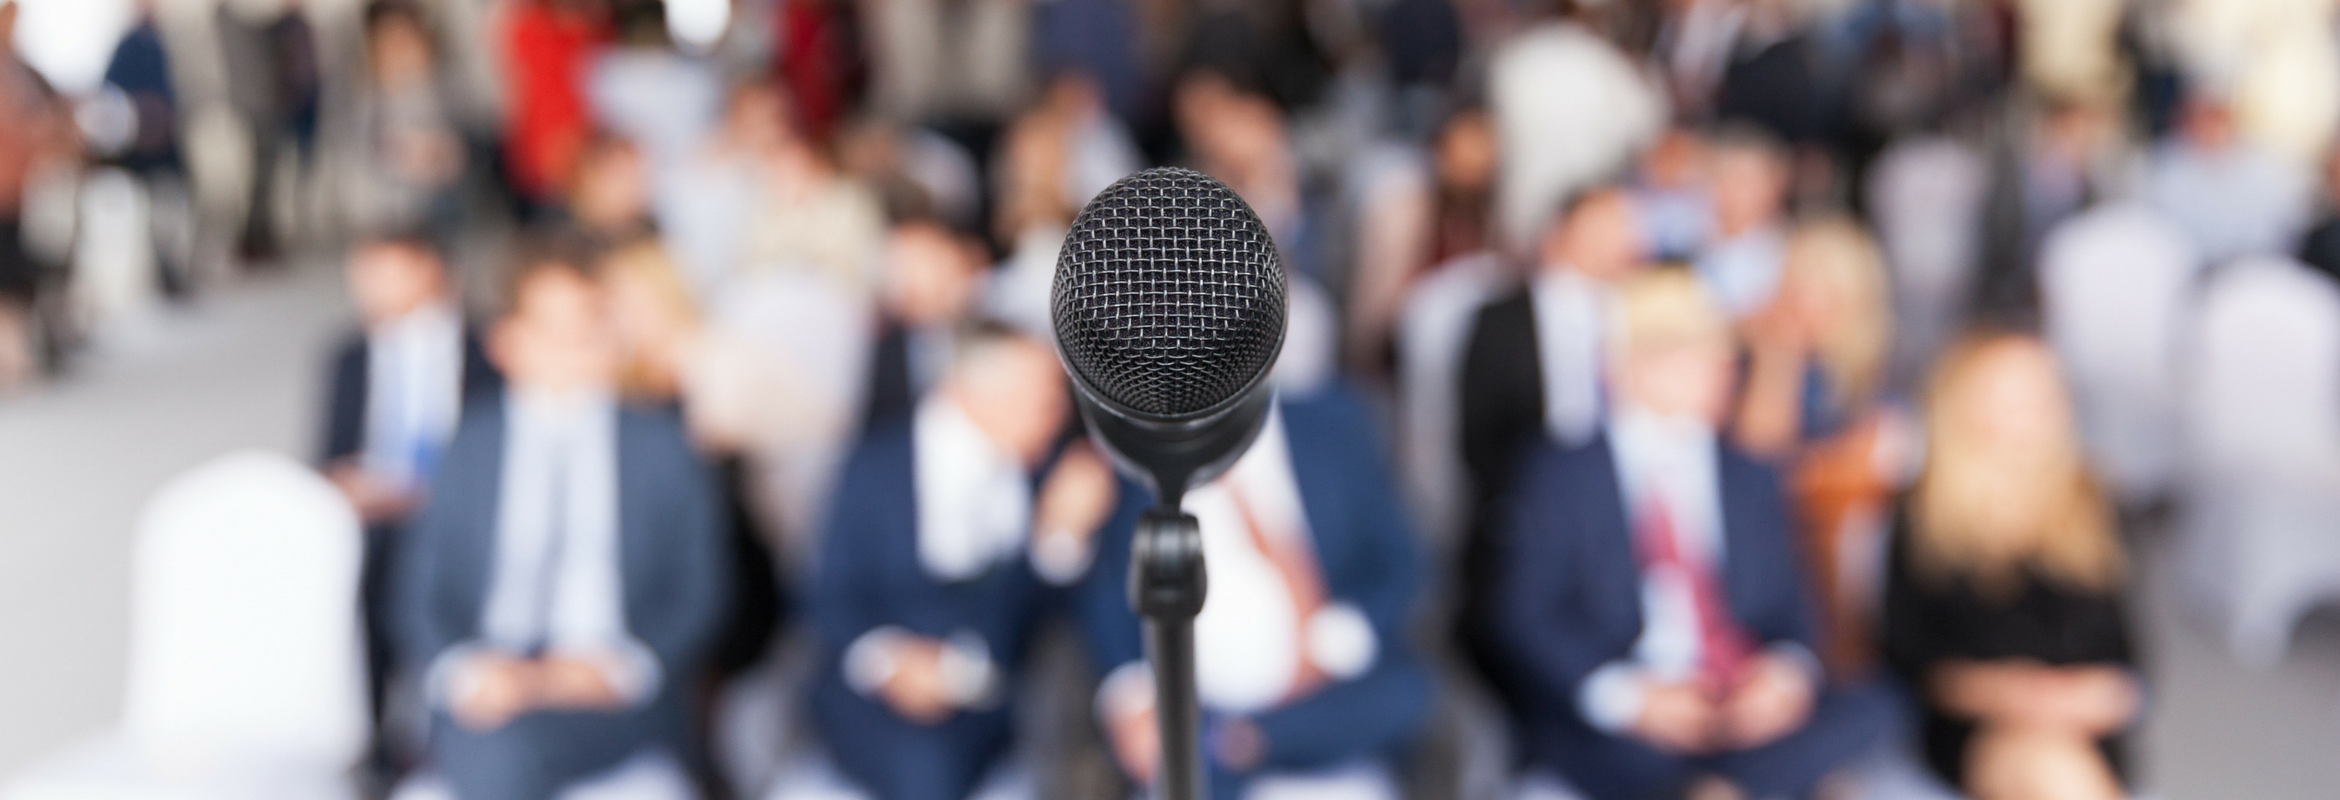 A microphone in a room of executives awaiting a presentation.